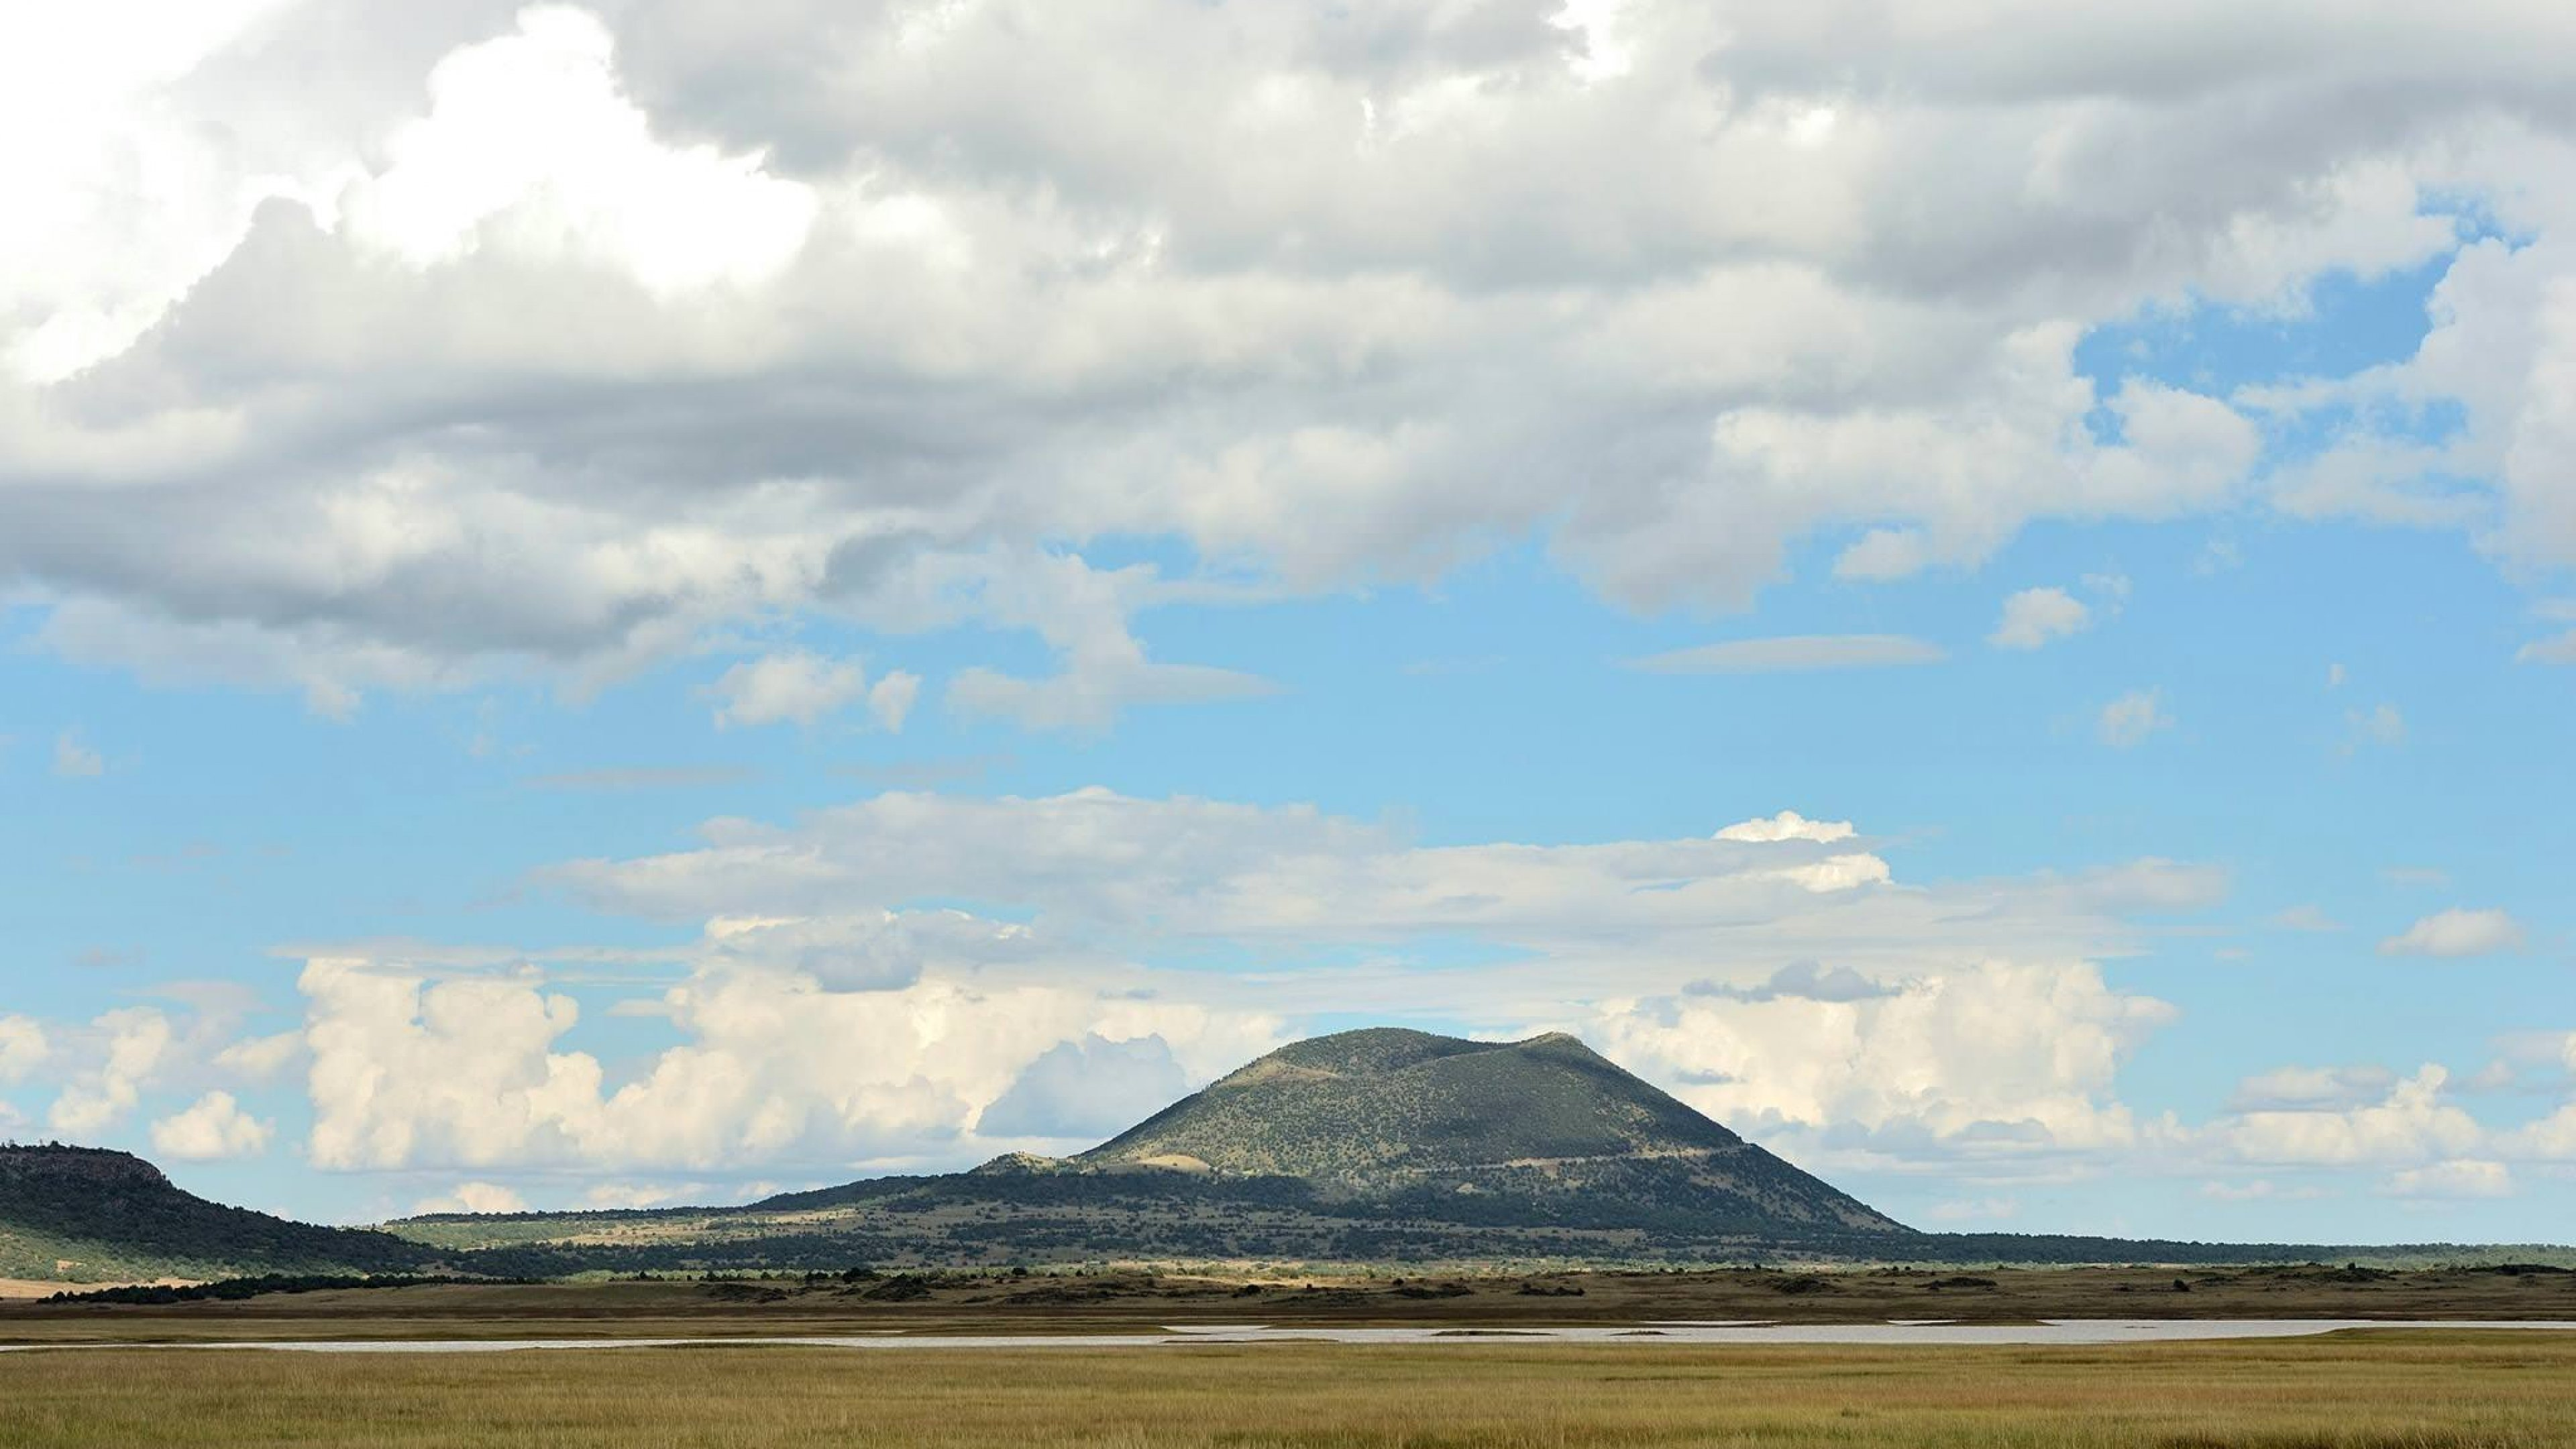 White clouds in a bright blue sky over Capulin Volcano National Monument in the horizon